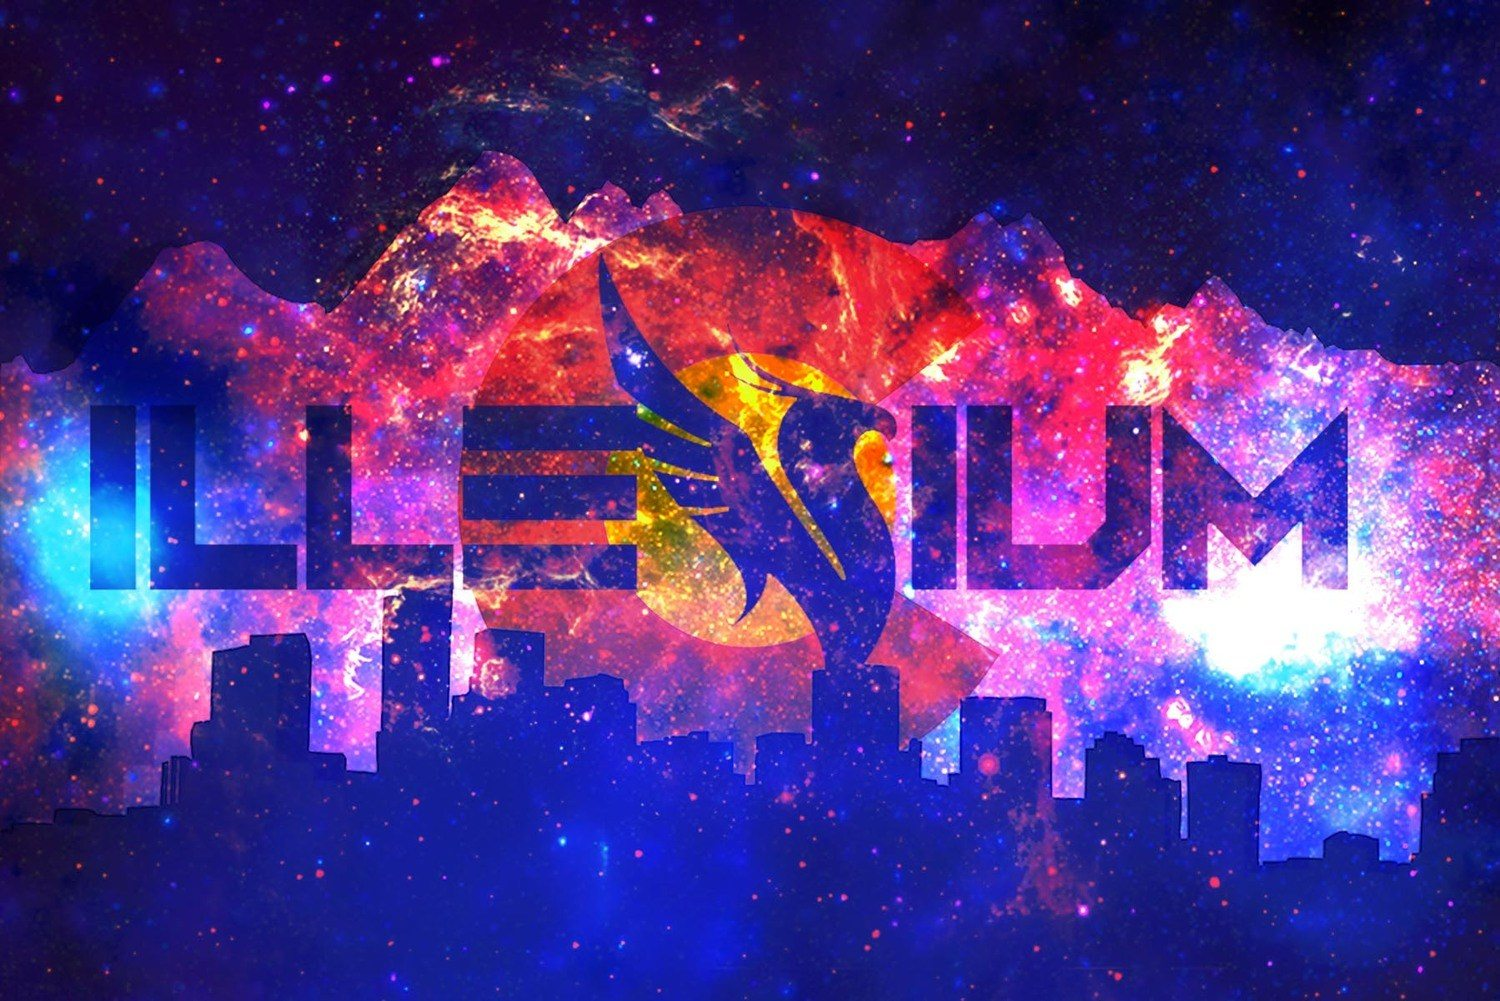 illenium-flag-banner-full-crack